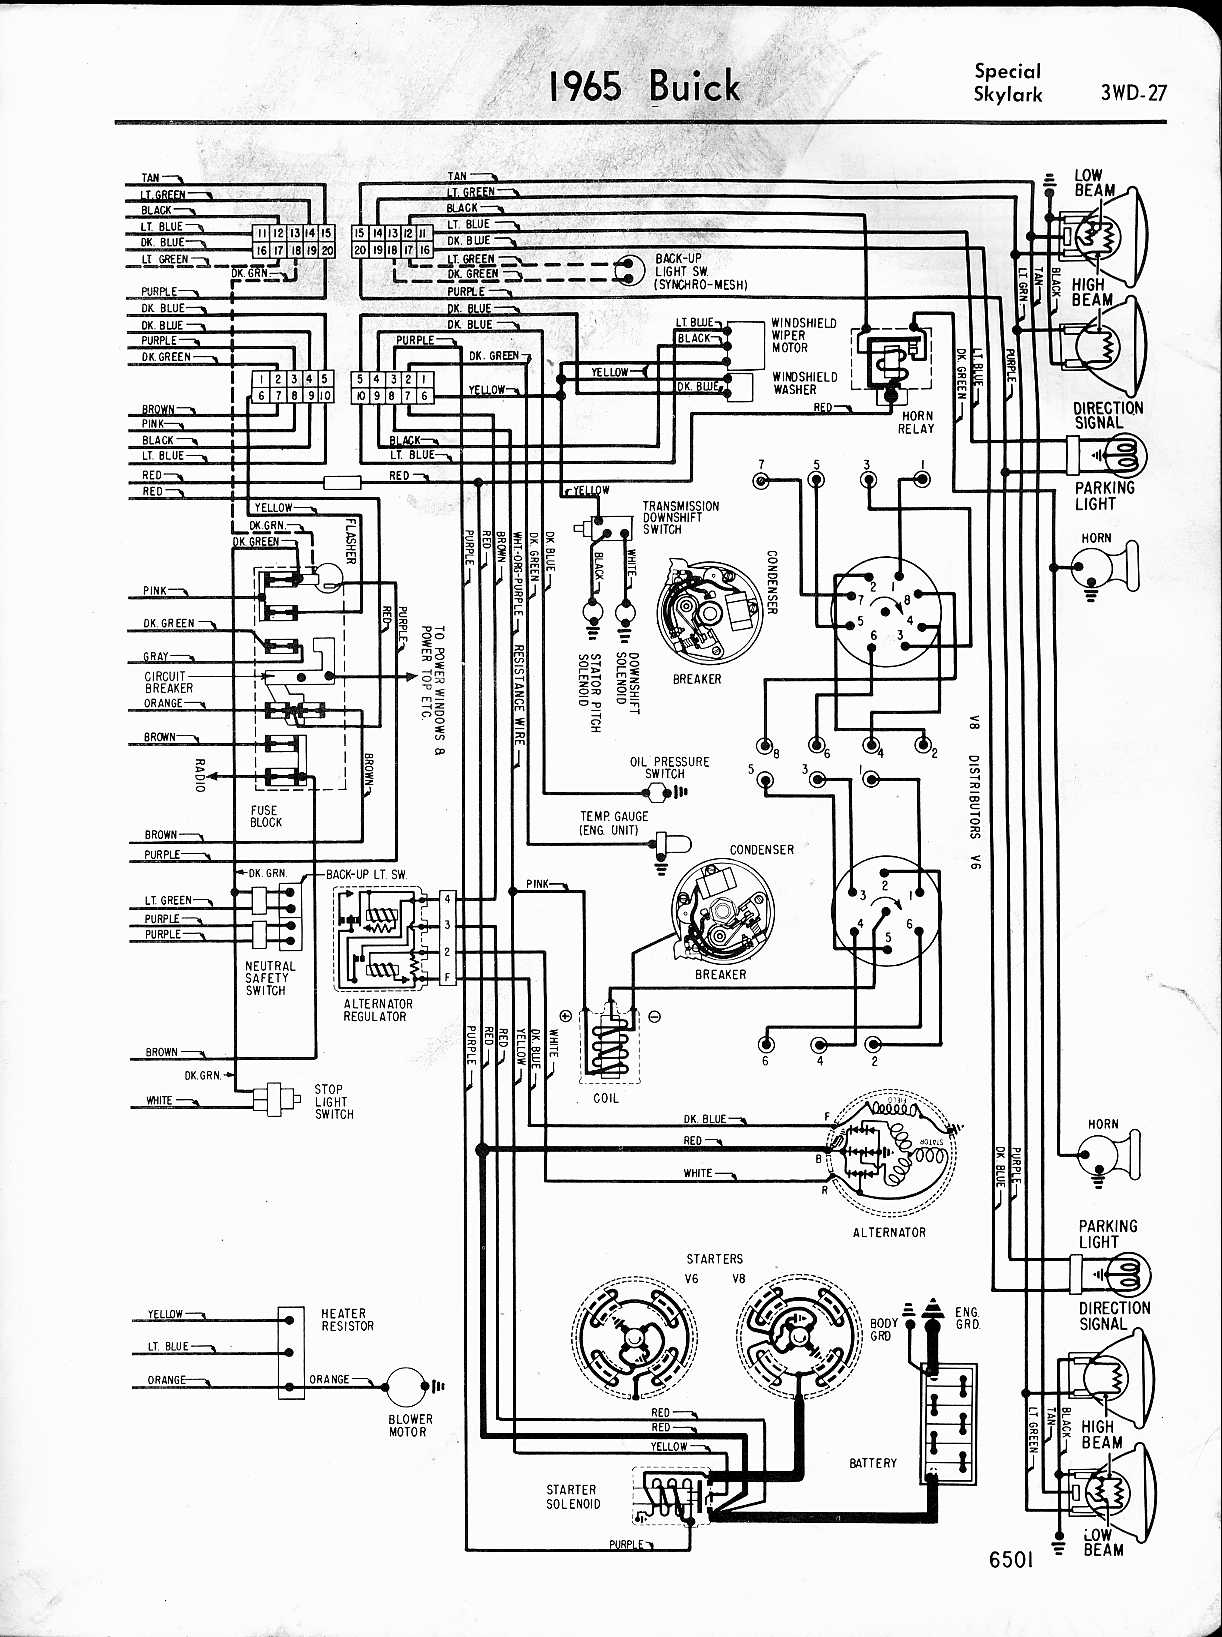 03 Buick Regal Wiring Diagram | Wiring Liry on buick regal door panel removal, buick lacrosse wiring diagram, buick enclave wiring diagram, buick regal brakes, buick regal exhaust system, buick regal lighting, buick regal radiator, buick stereo wiring diagram, buick regal power, buick regal firing order, buick regal dash lights, buick century electrical diagrams, buick rainier wiring diagram, buick regal water pump, buick regal fuel pump, buick regal spark plugs, buick regal coolant leak, buick reatta wiring diagram, buick regal radio, buick regal engine diagram,